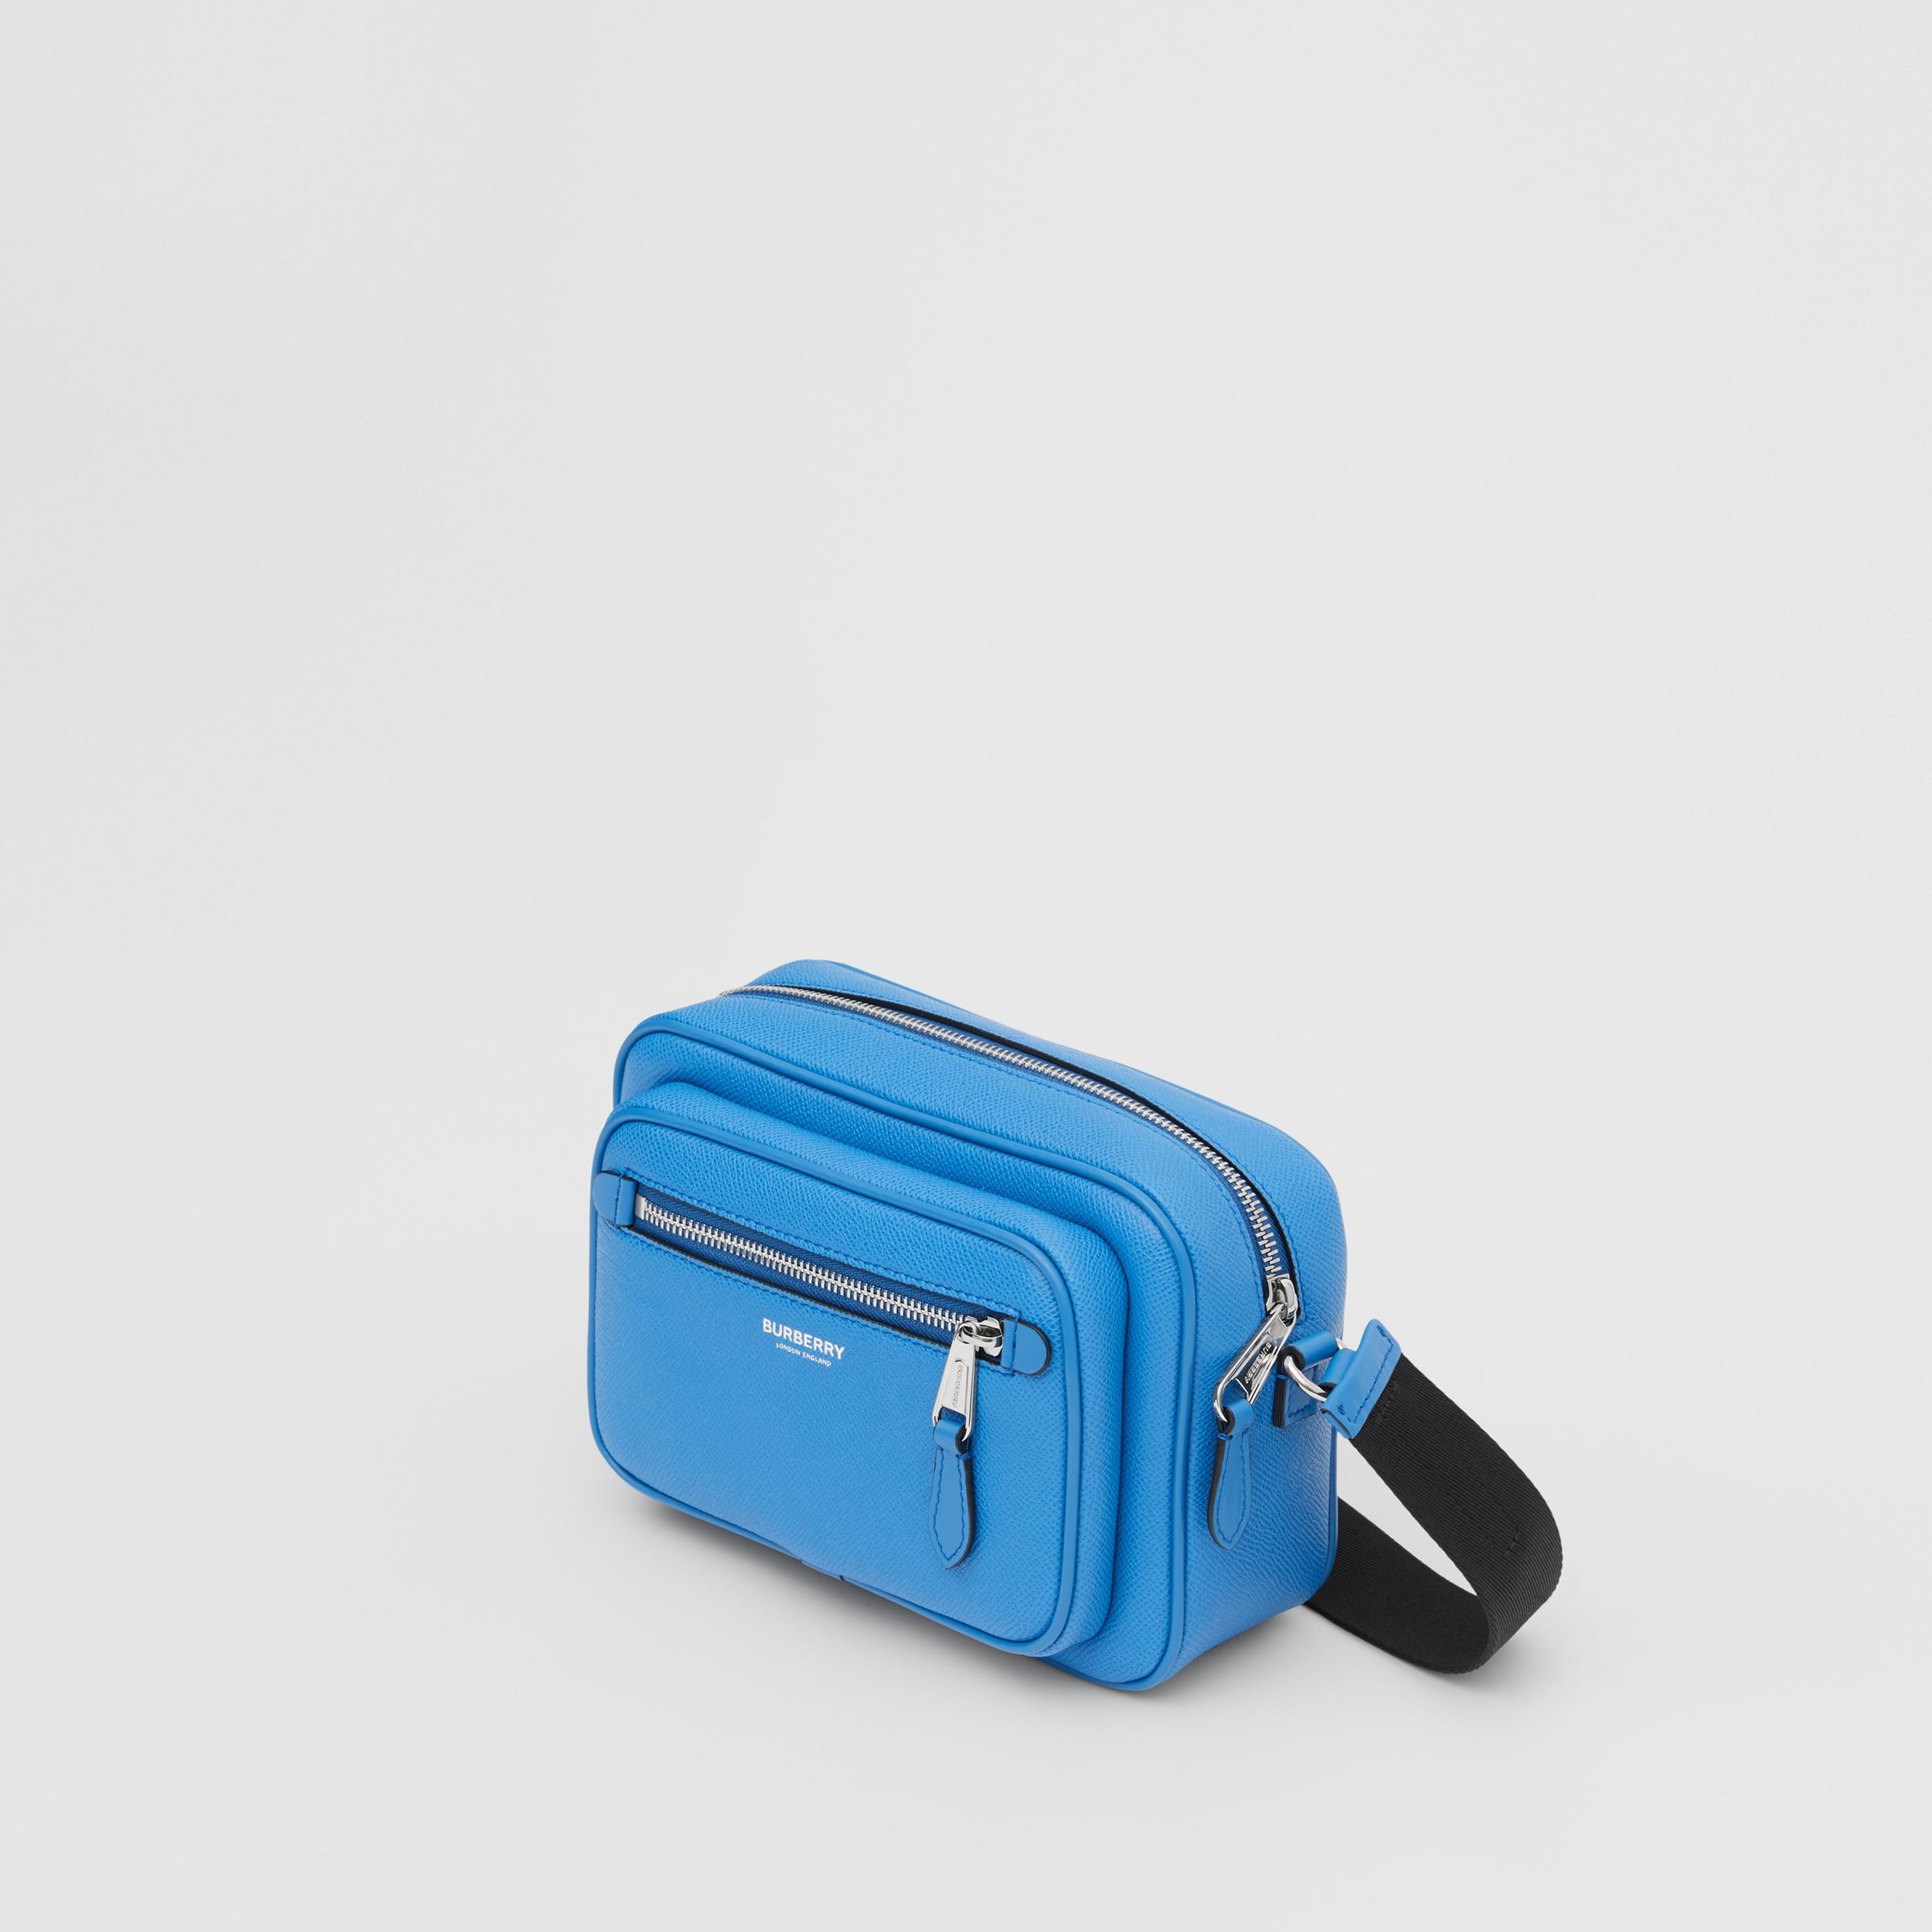 Grainy Leather Crossbody Bag in True Blue - Men | Burberry Australia - 4